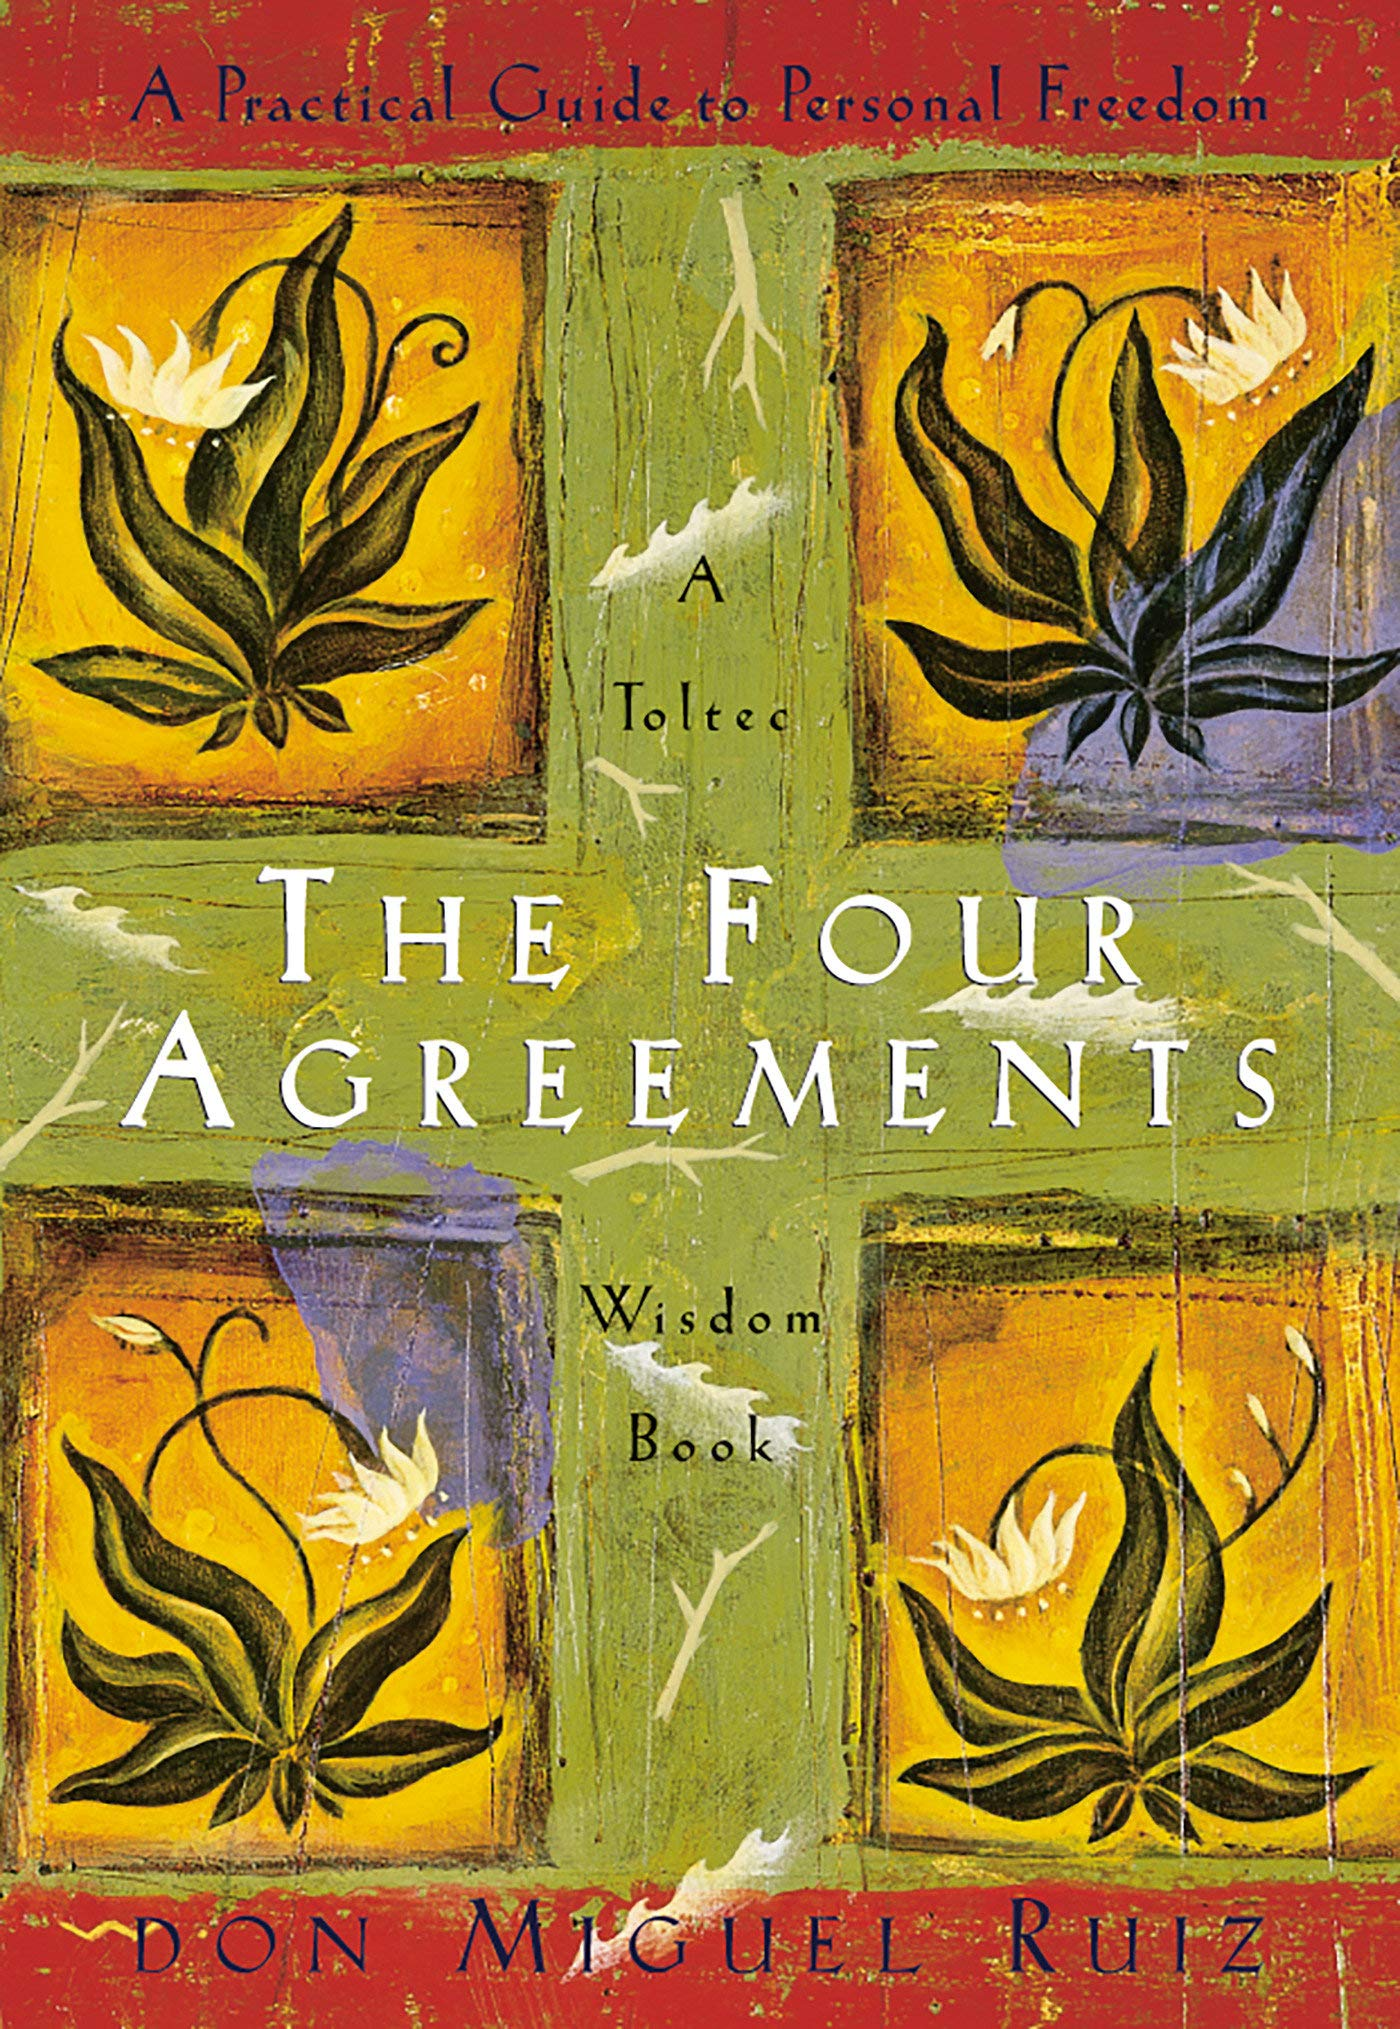 The Four Agreements: A Practical Guide to Personal Freedom (A Toltec Wisdom  Book): Don Miguel Ruiz: 9781878424310: Amazon.com: Books